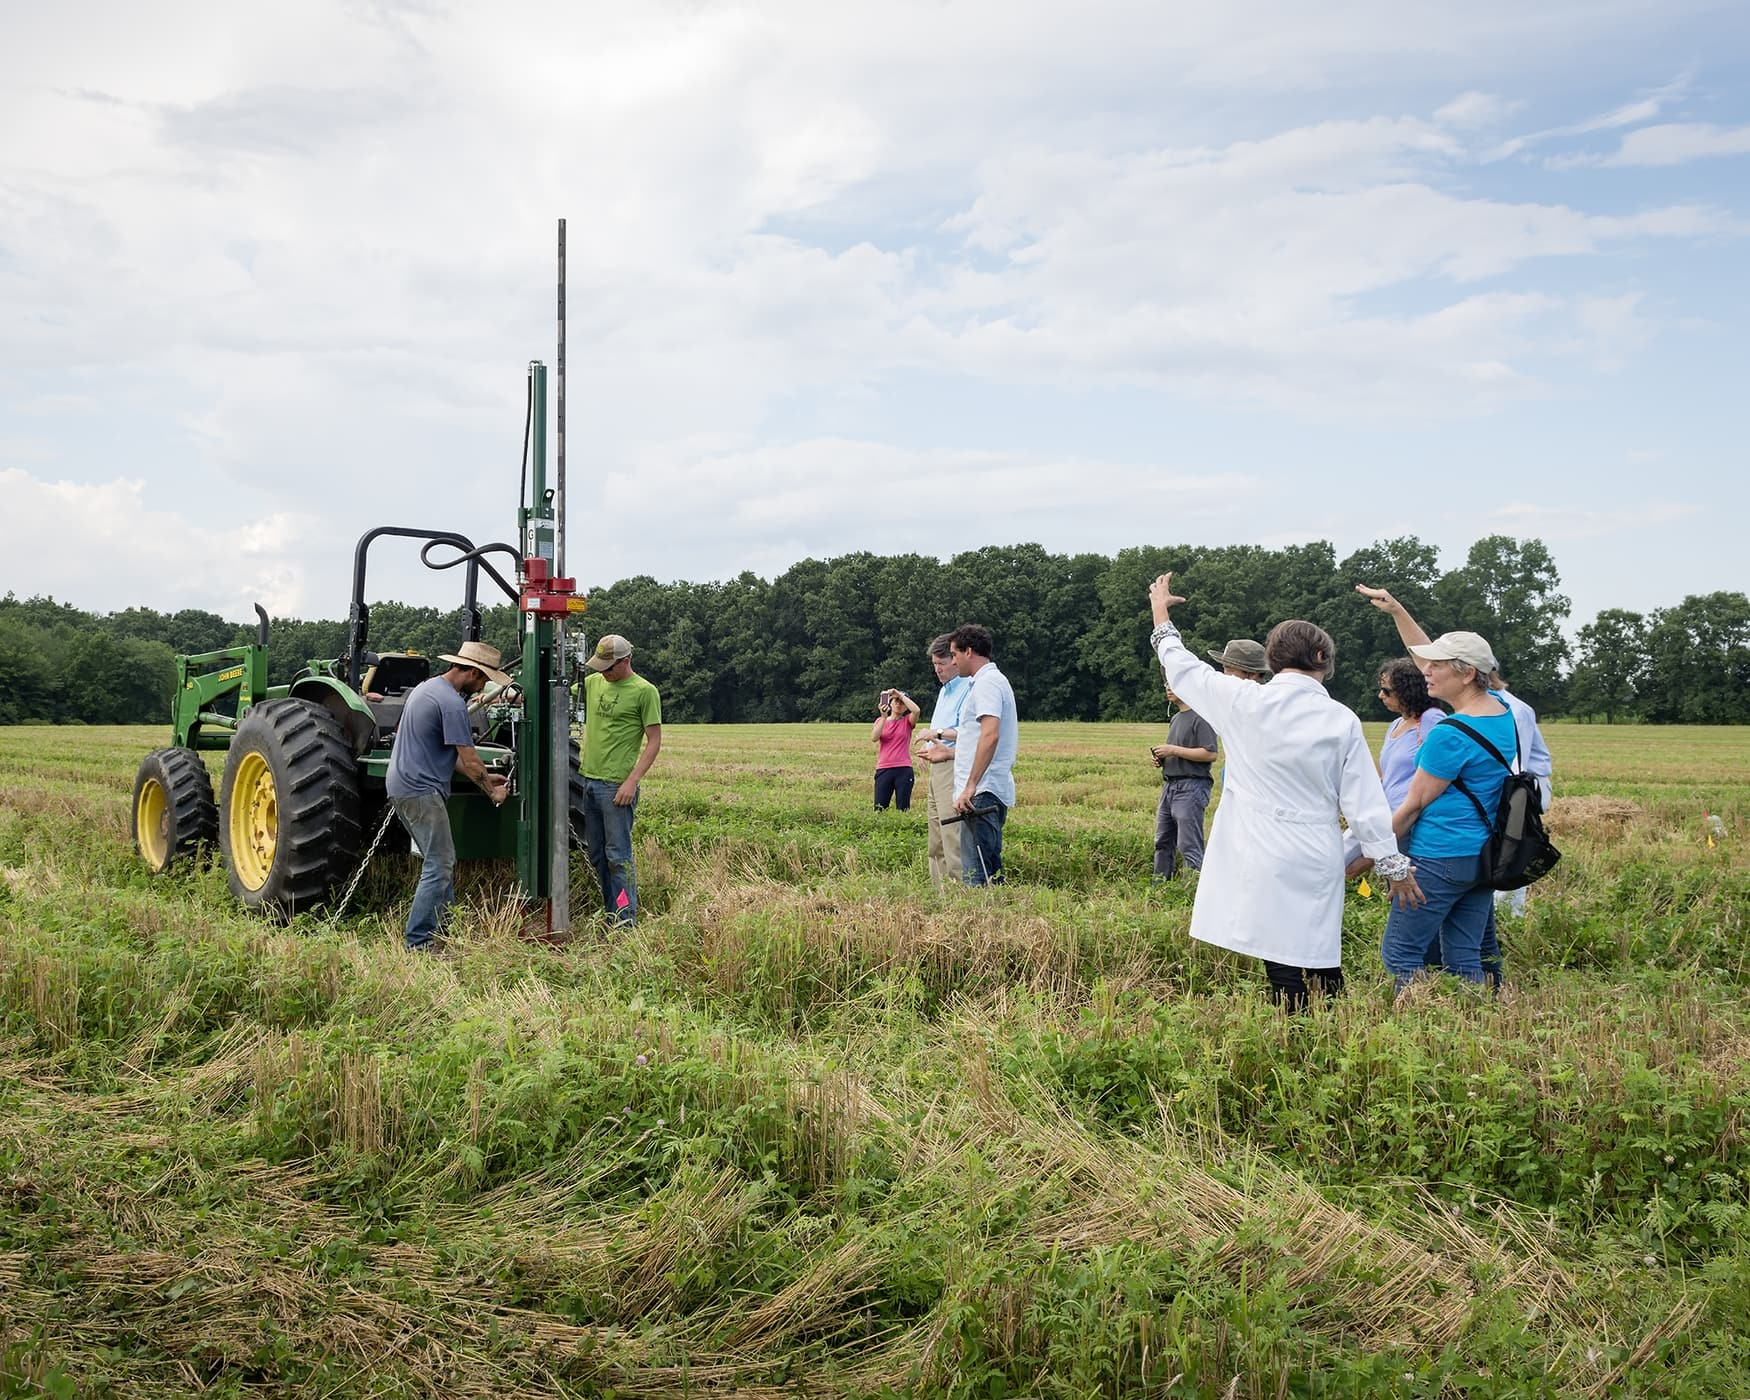 Farmers exploring regenerative agricultural methods